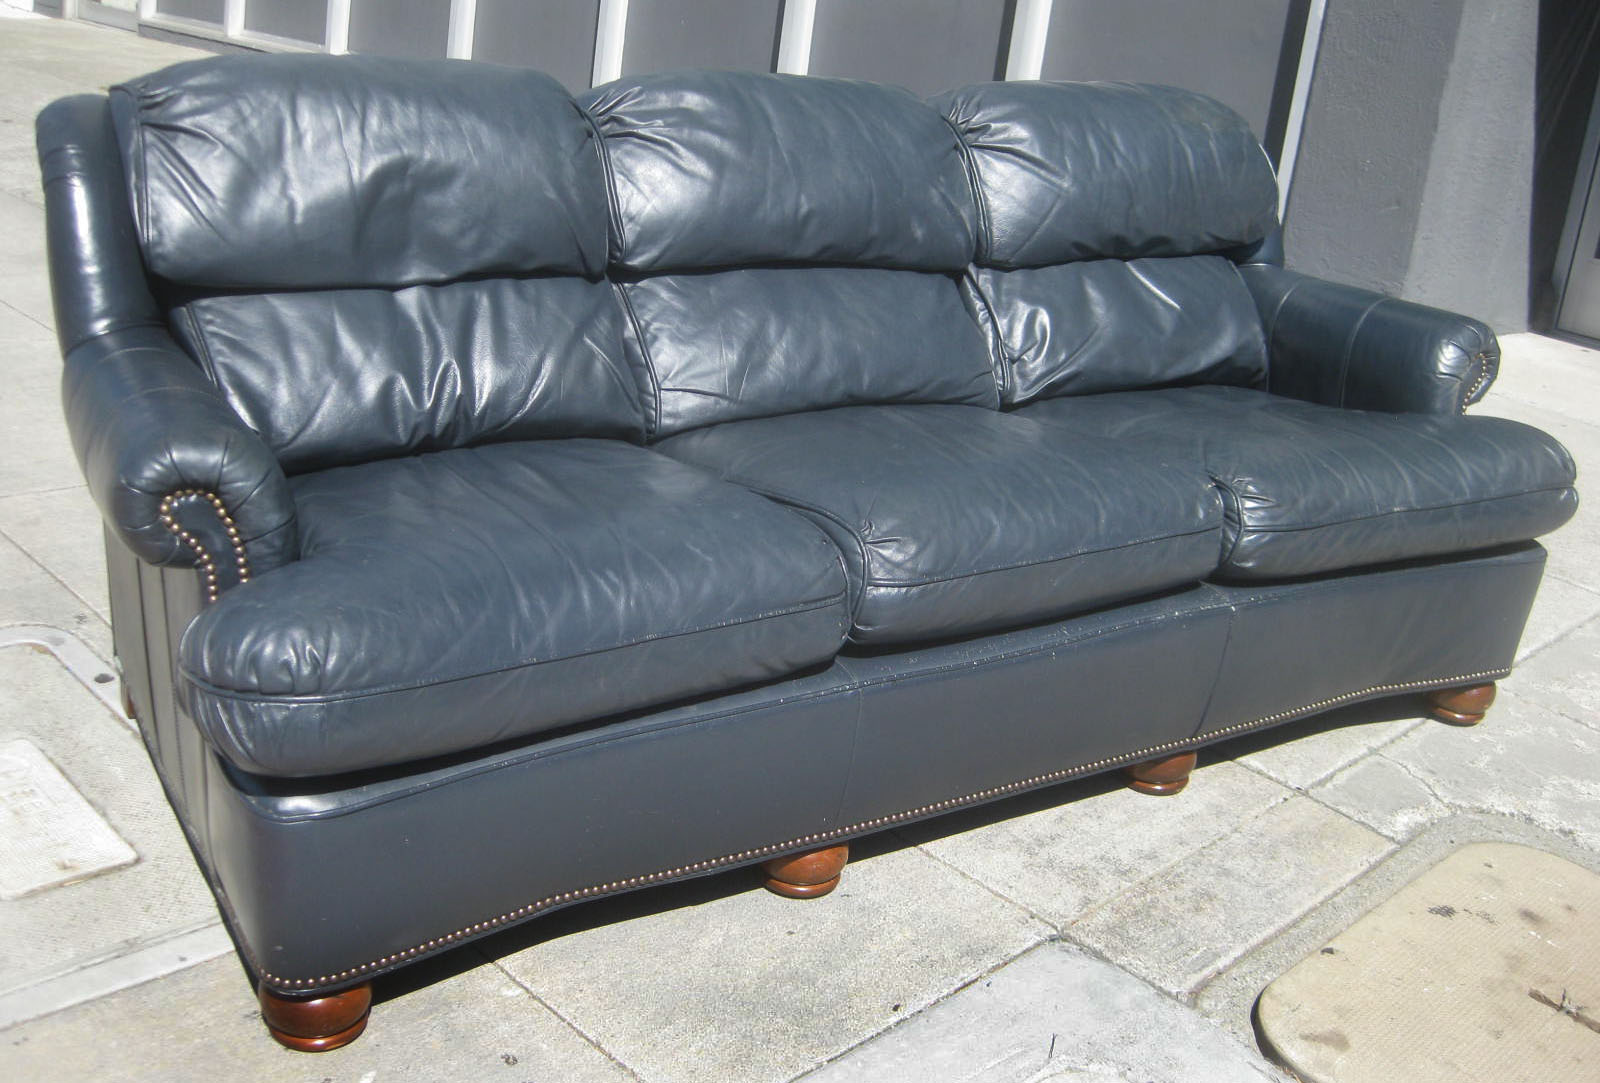 blue leather sofas chesterfield sofa western australia uhuru furniture and collectibles sold 90